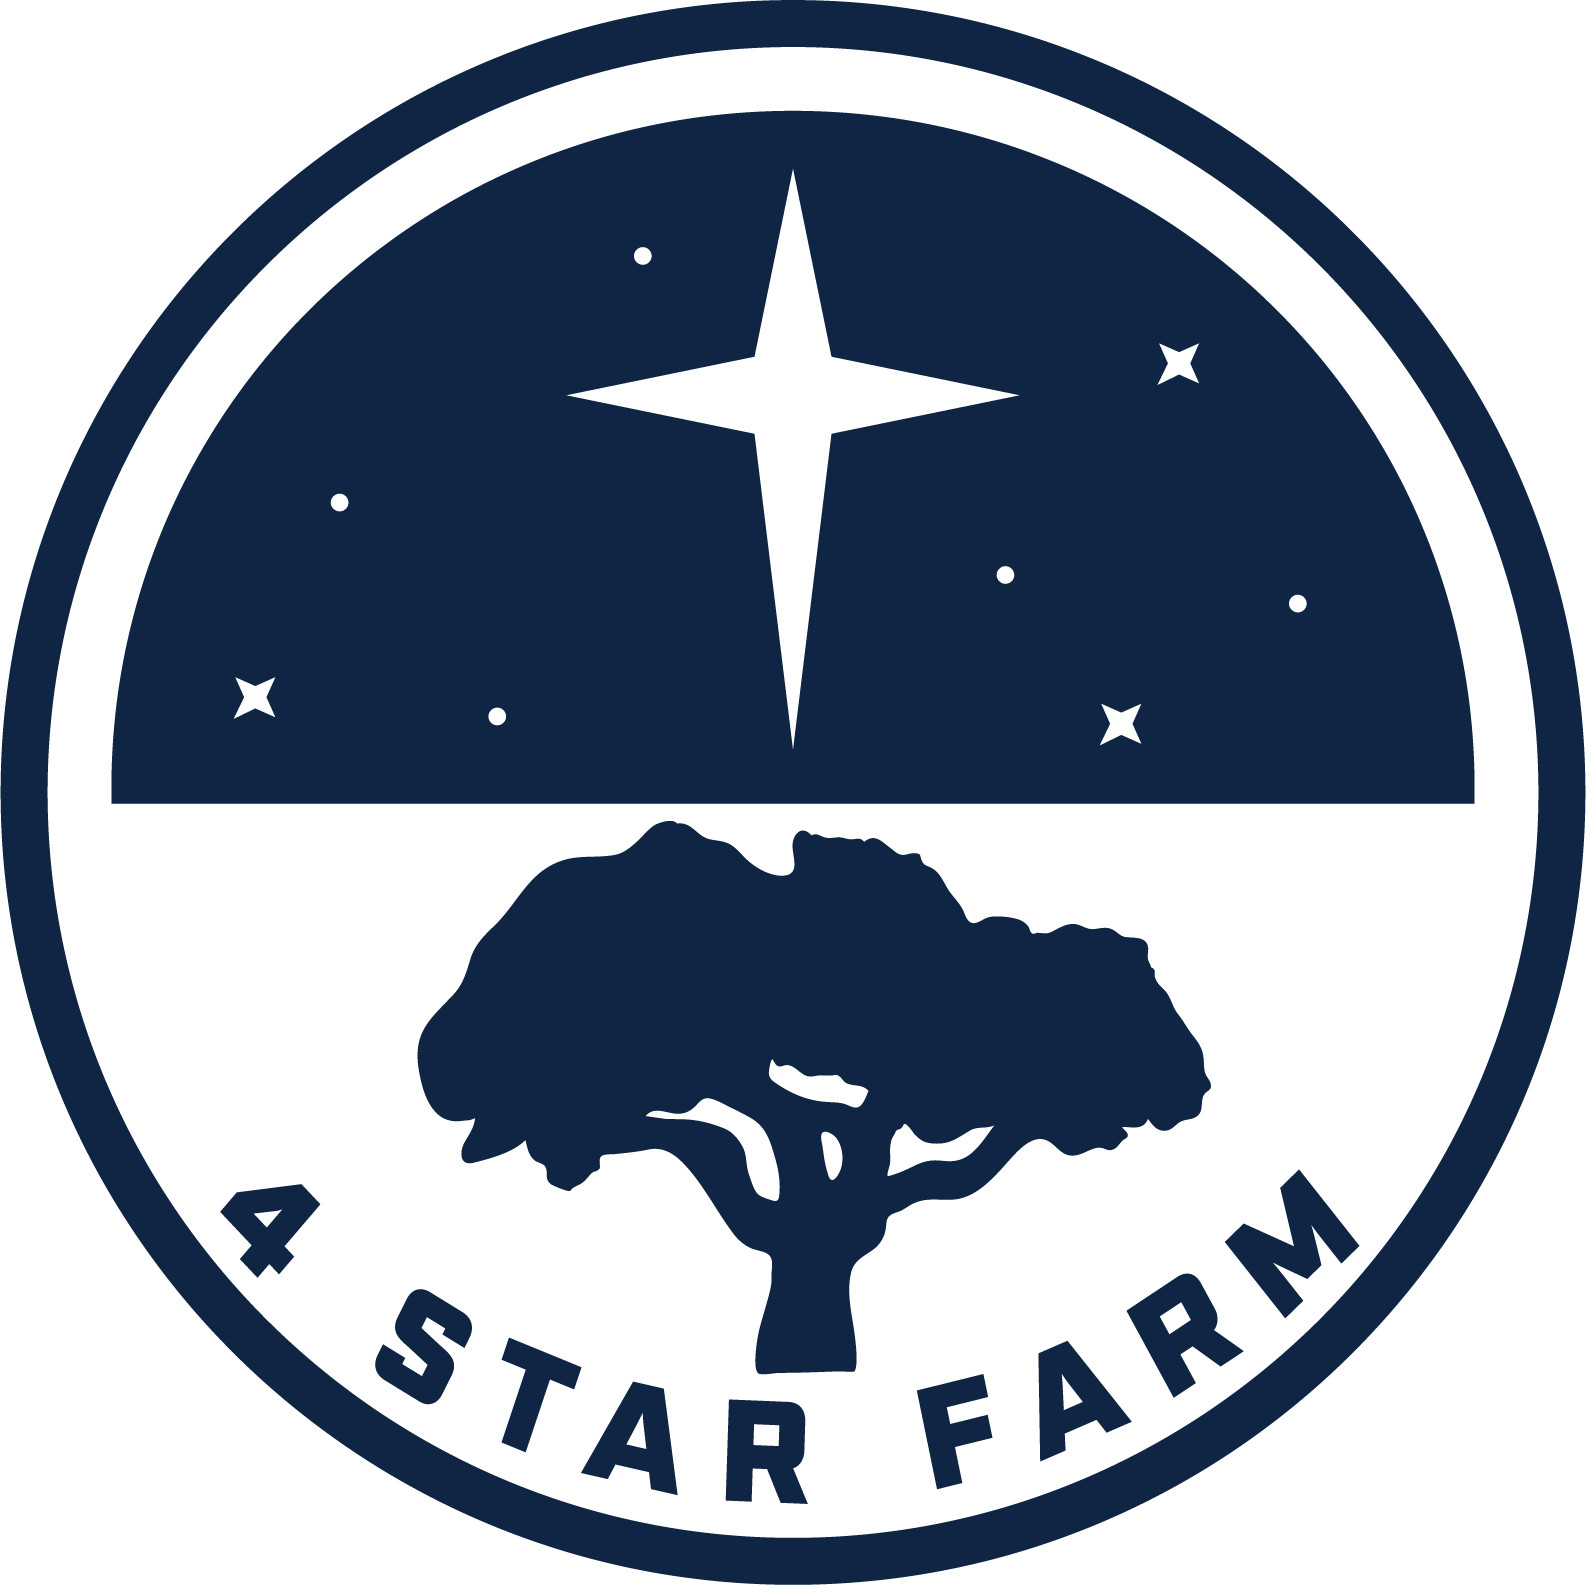 4 Star Farm Logo